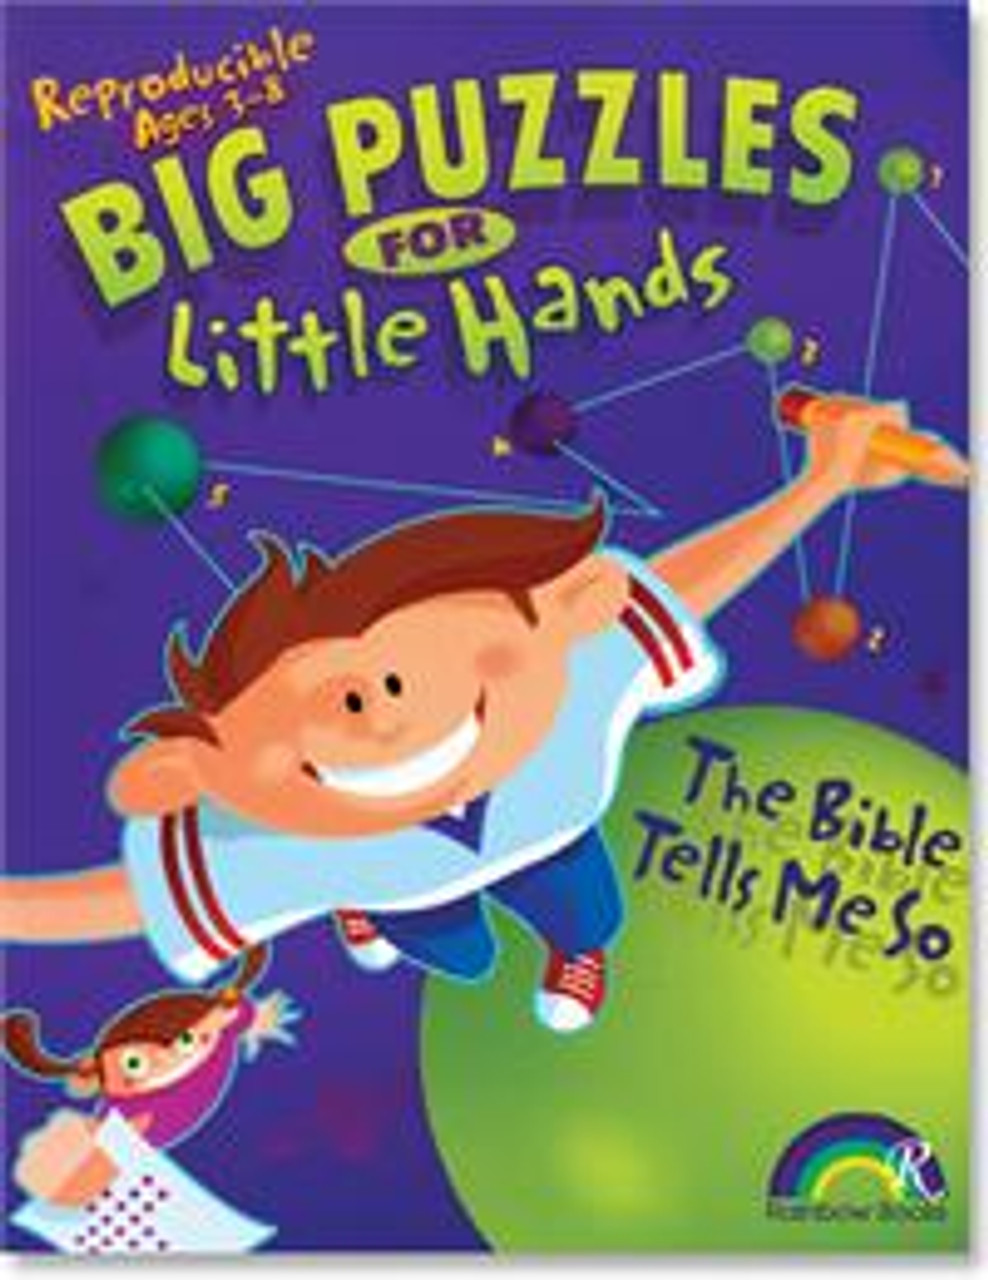 Big Puzzles for Little Hands - The Bible Tells Me So 3-8